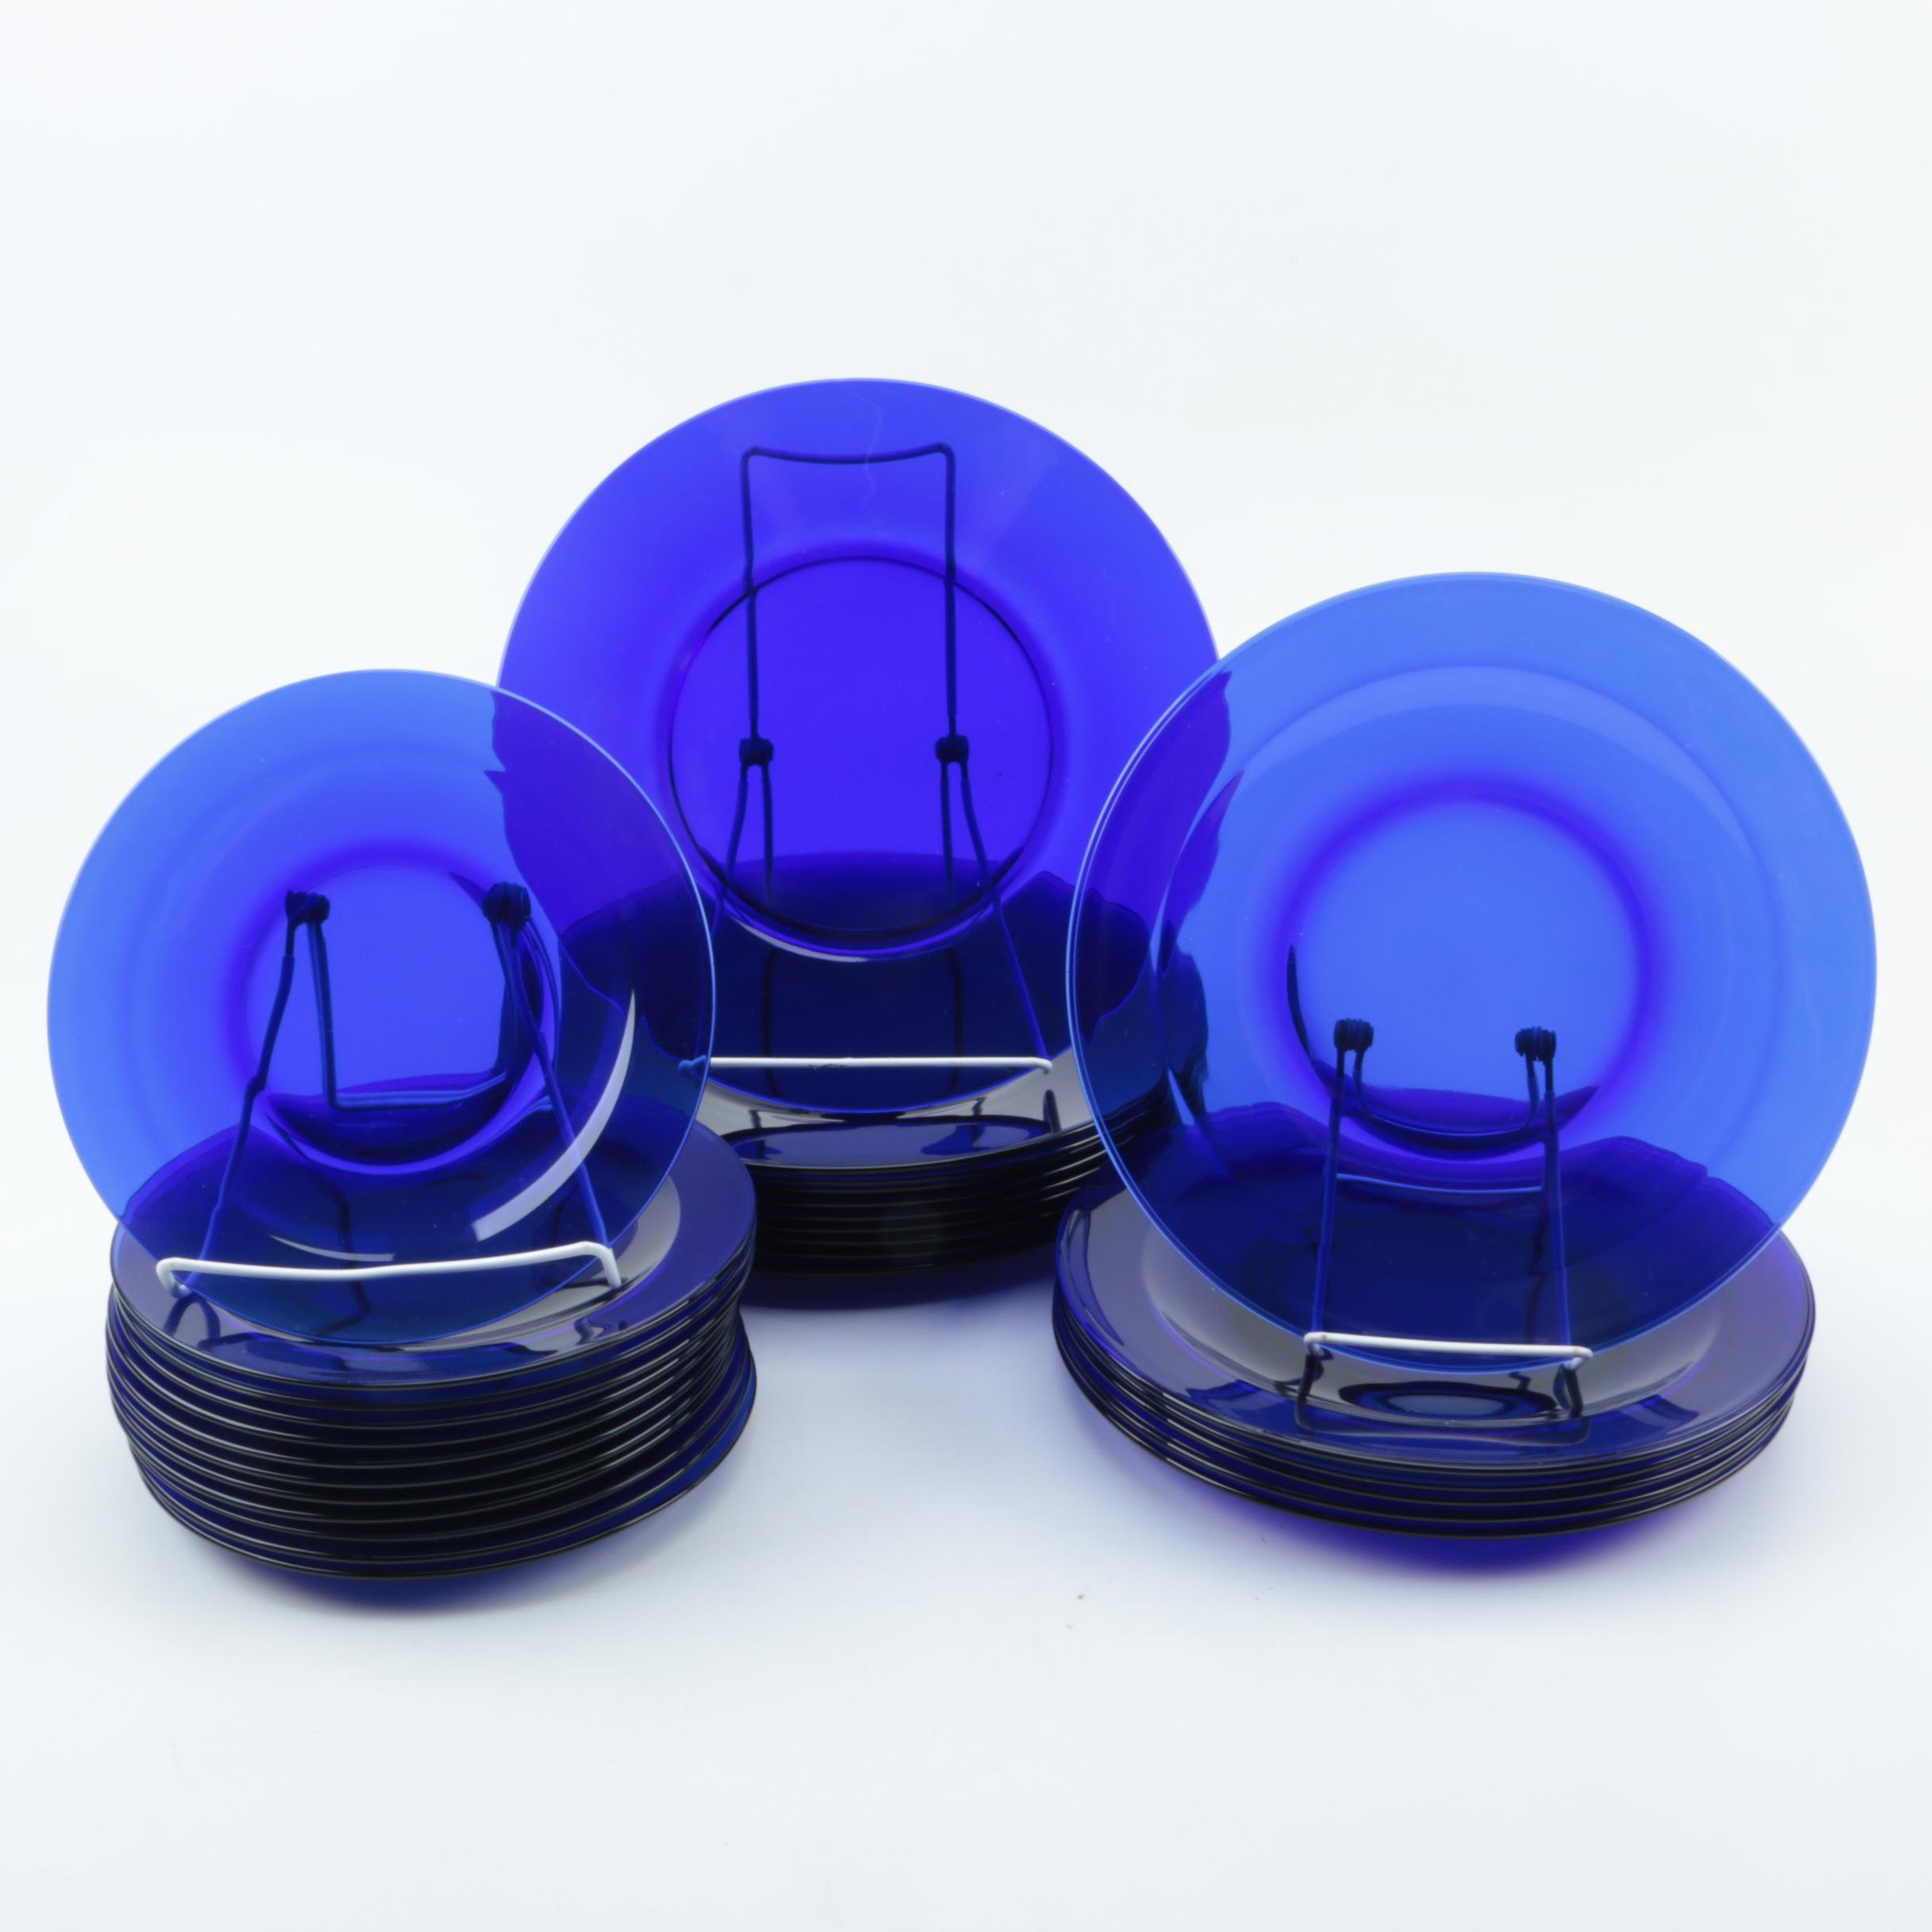 Collection of Cobalt Blue Glass Plates